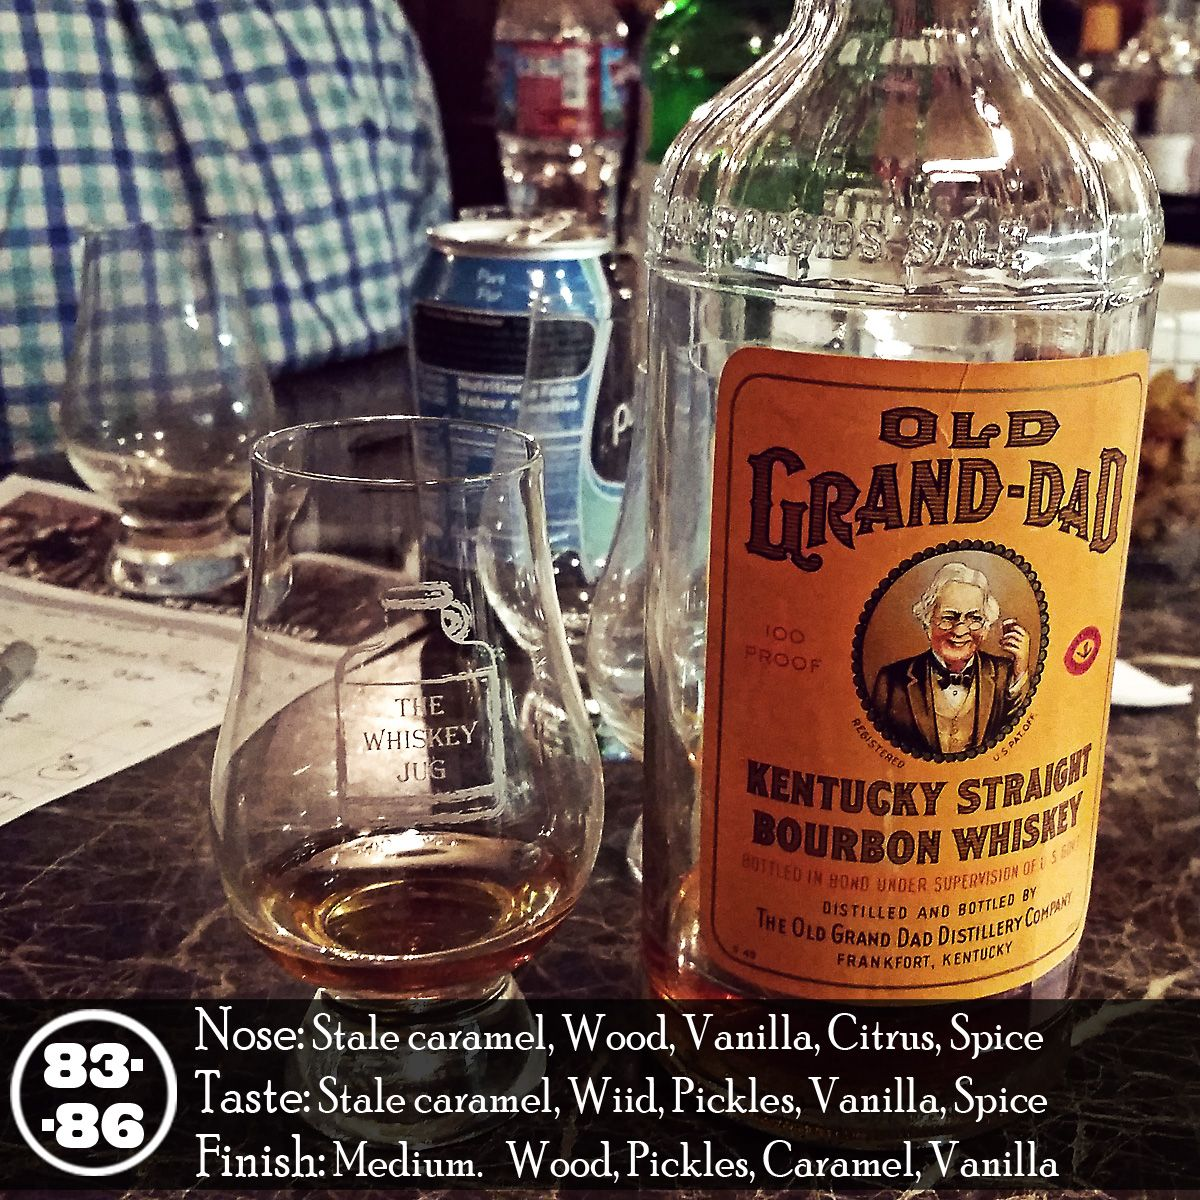 Old Grand-Dad Bottled In Bond 1949 is an experience. It's something that was made at a distillery that no longer exists by a company that has also ceased to exist. It's an echo of bourbon's past and that brings with it a certain level of respect when consuming it. Despite the fact that it wasn't a killer bourbon experience there's still something grin-inducing about drinking a whiskey that's been on this planet 2x longer than I have.